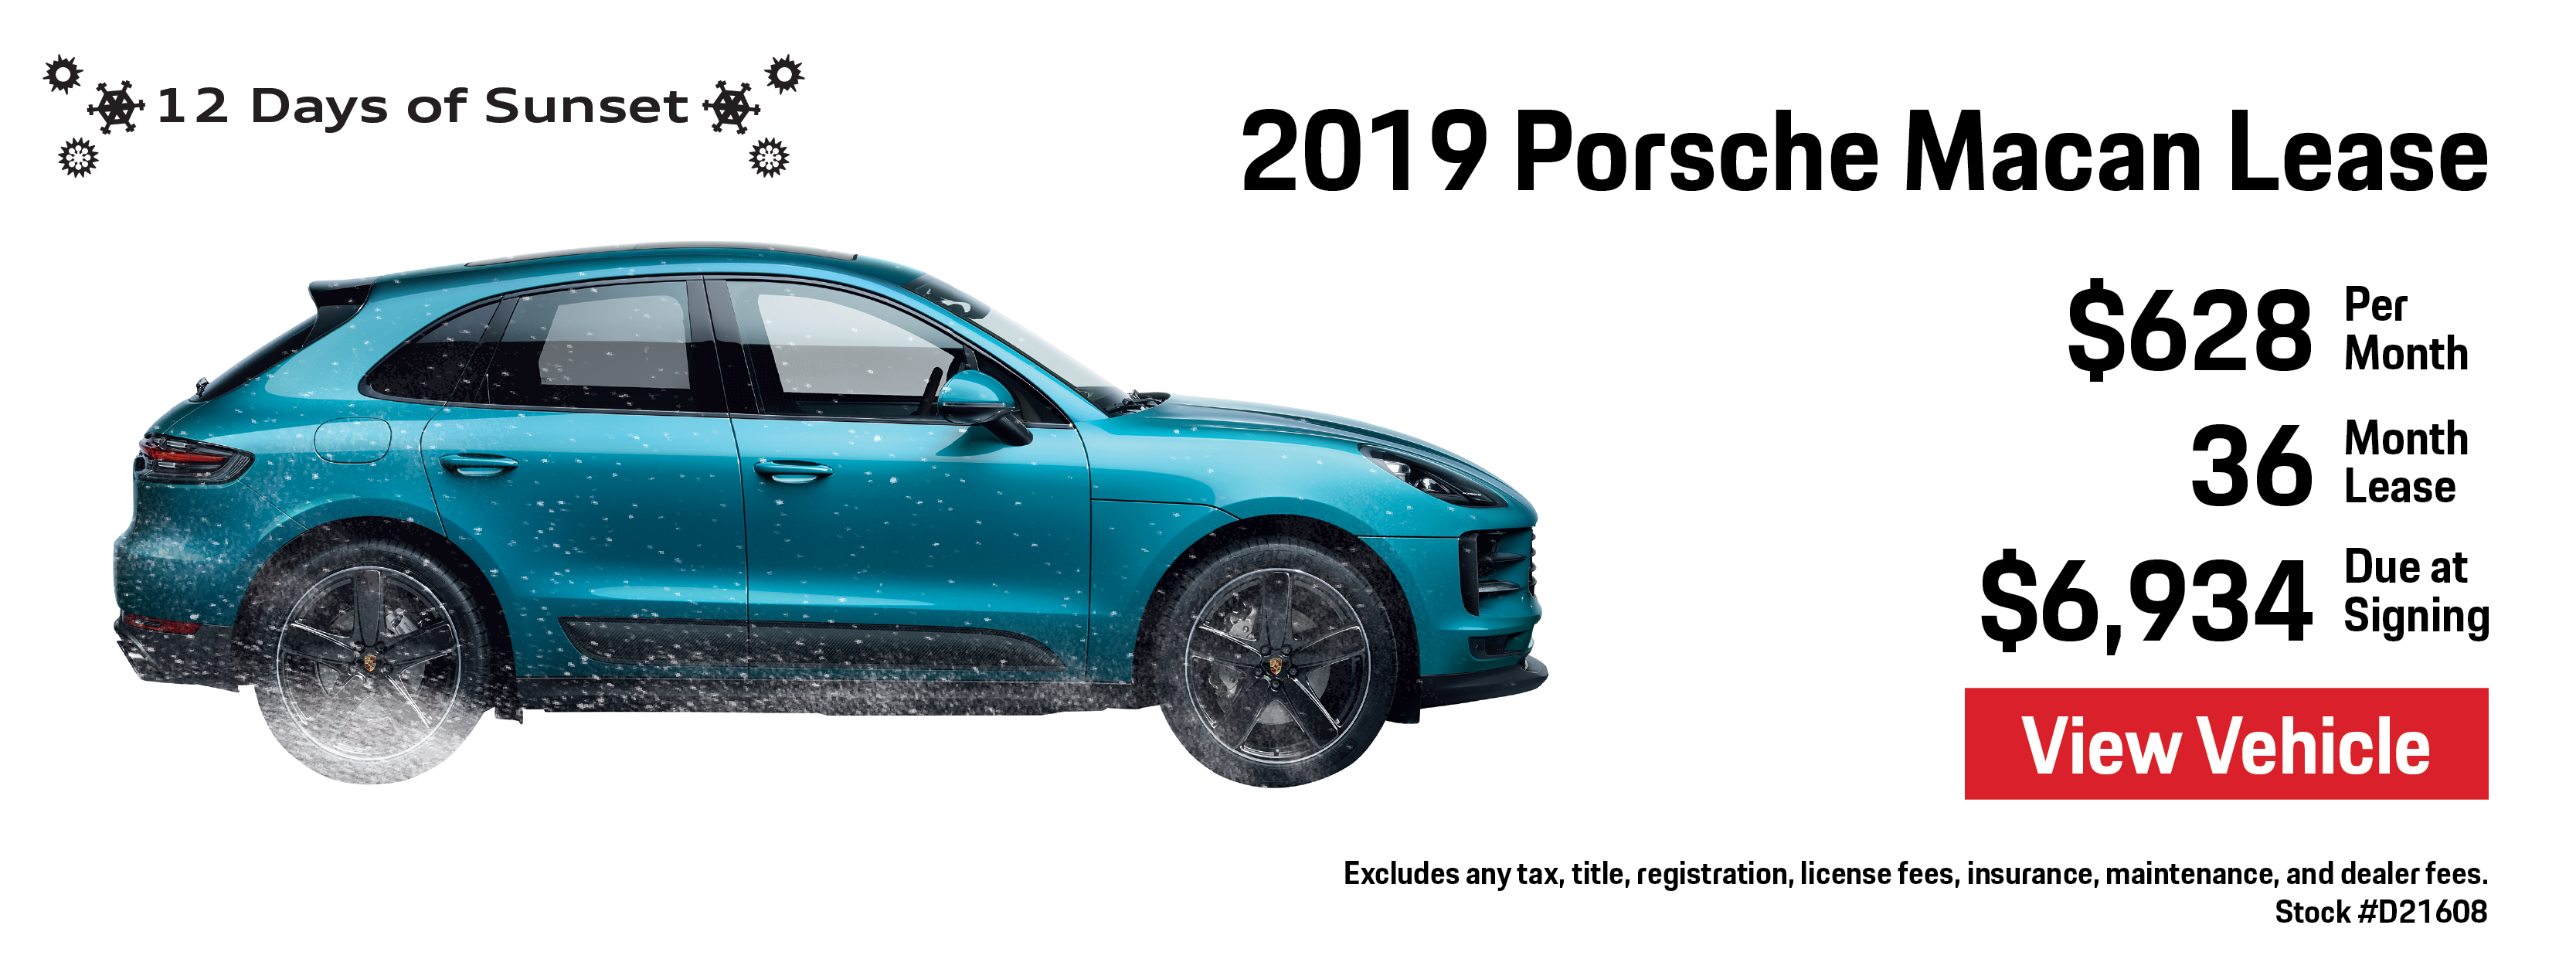 12 Days of Sunset   Day 2   2019 Porsche Macan Lease Offer   $555 per month / 39 month lease / $6,861 due at signing   View Details